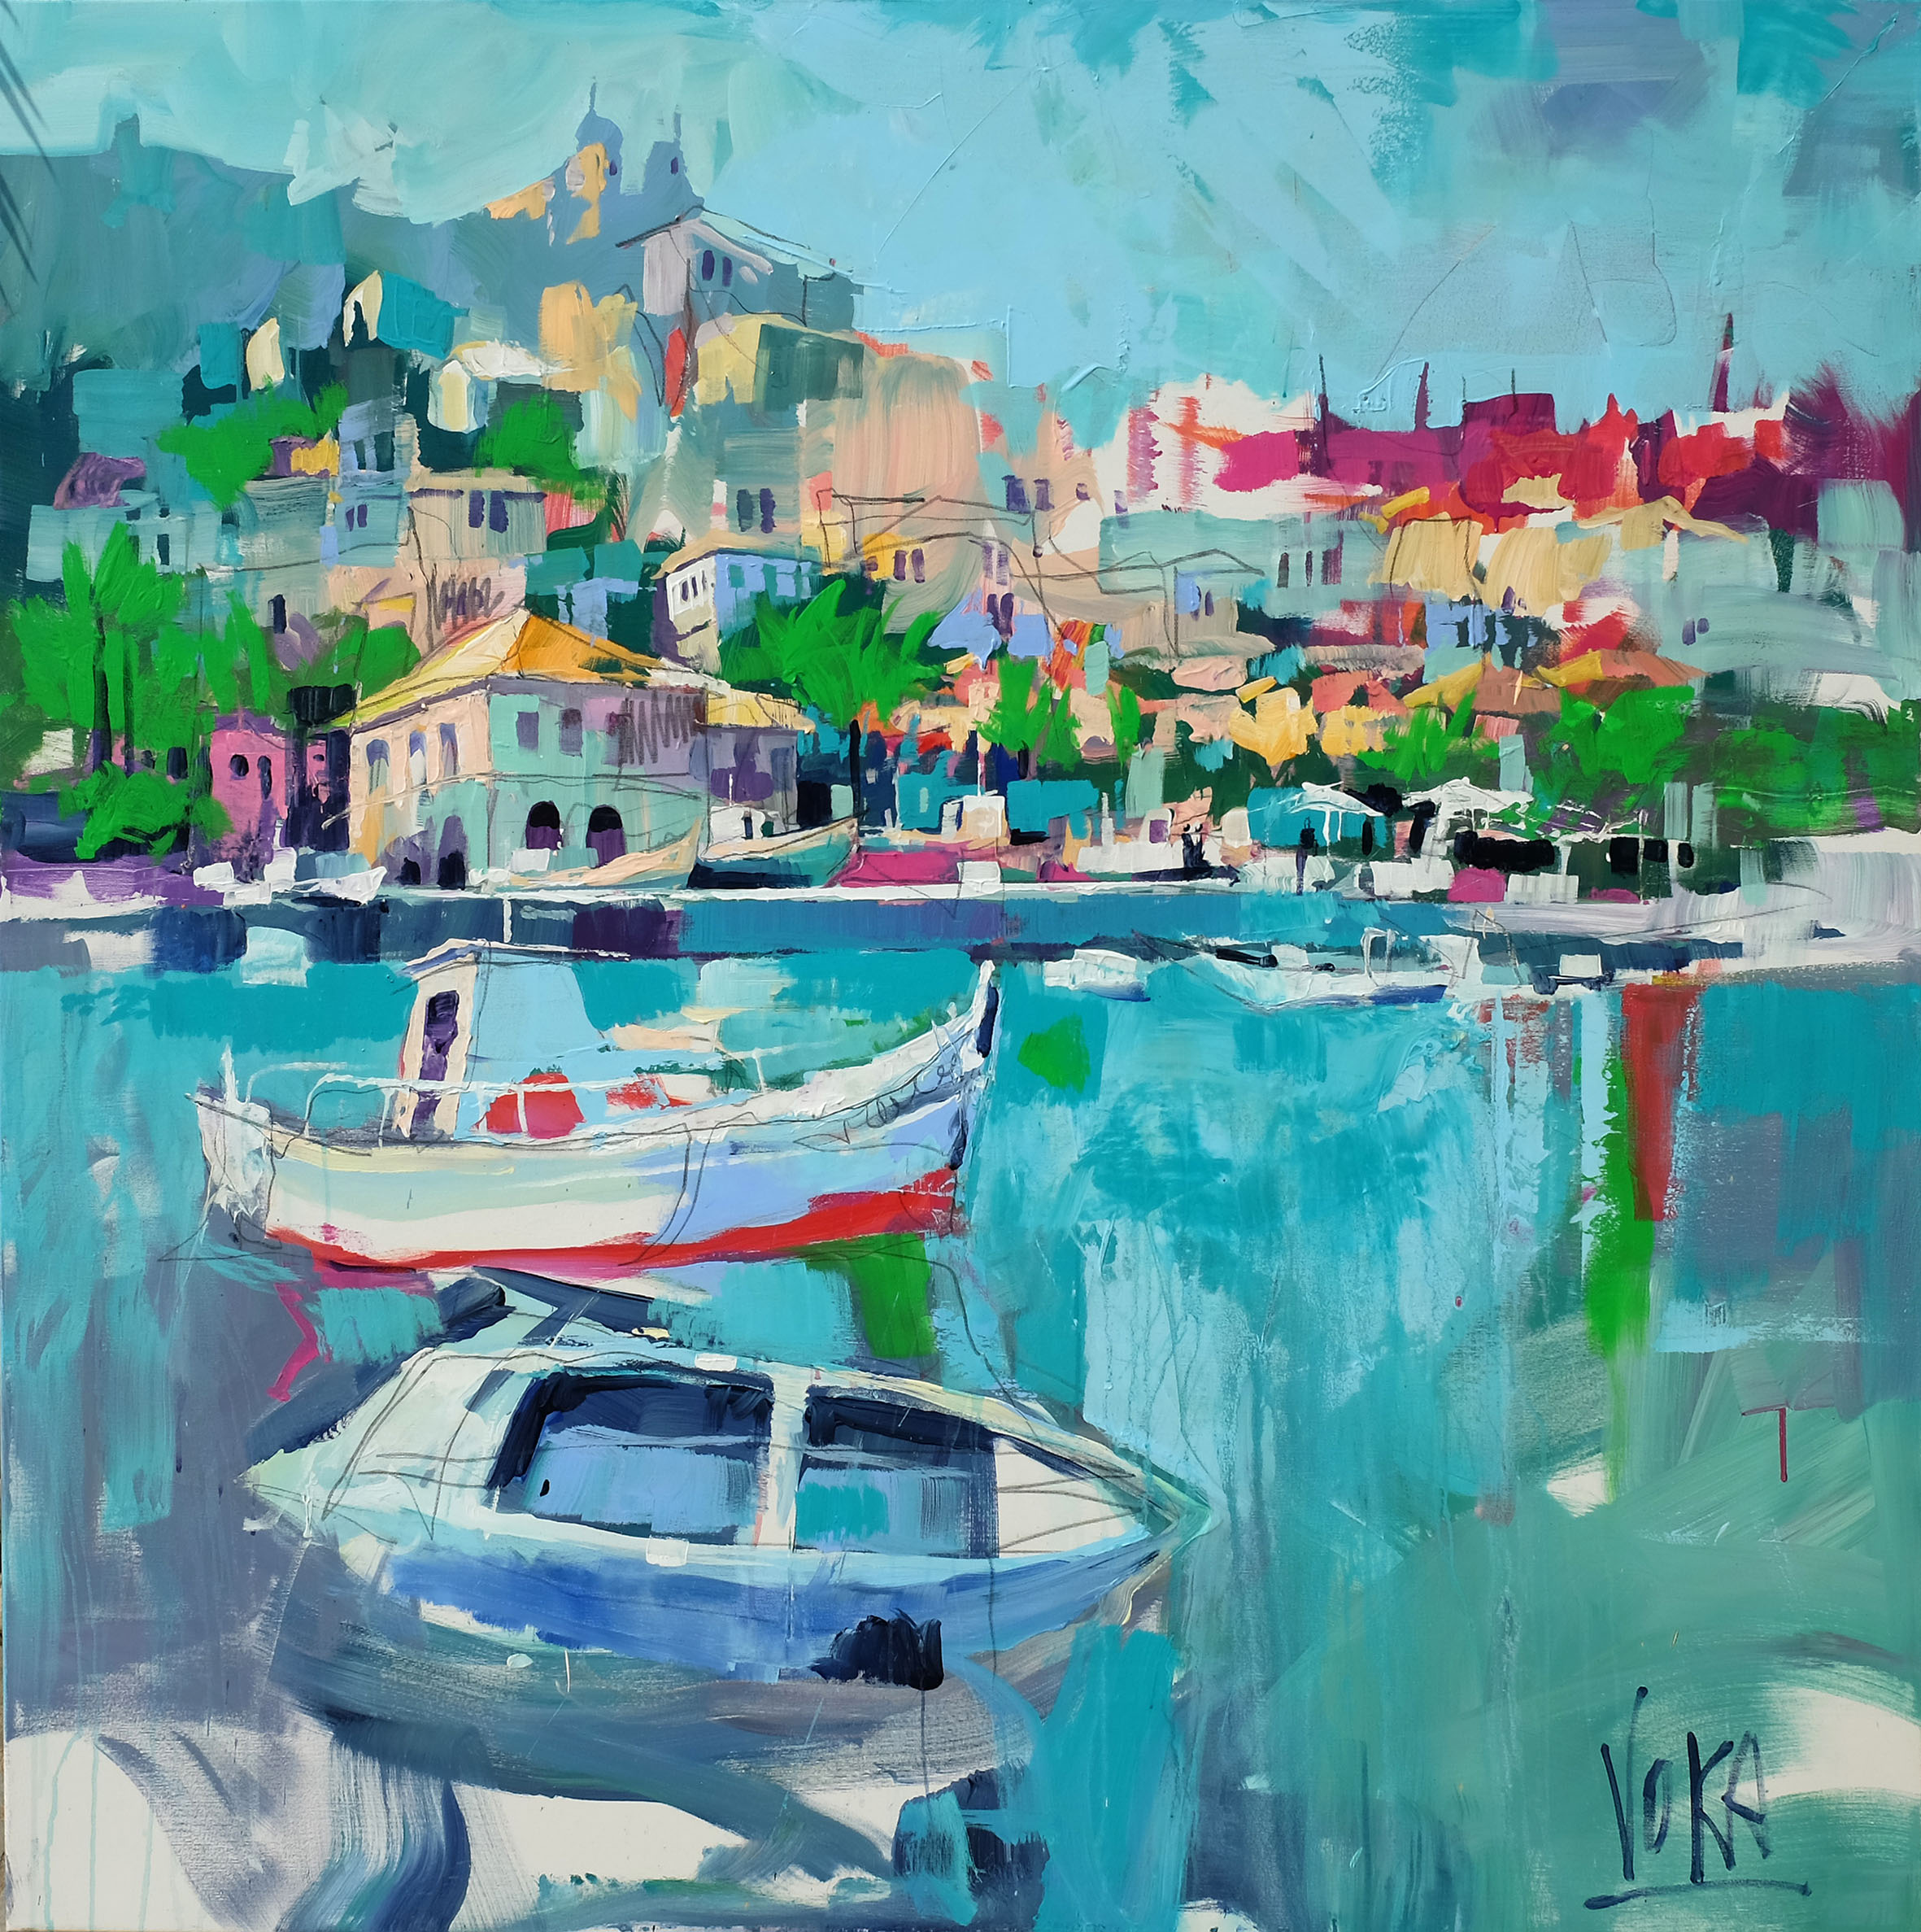 Koroni, 150x150 cm/59,1x59,1 inch, Acrylic on Canvas